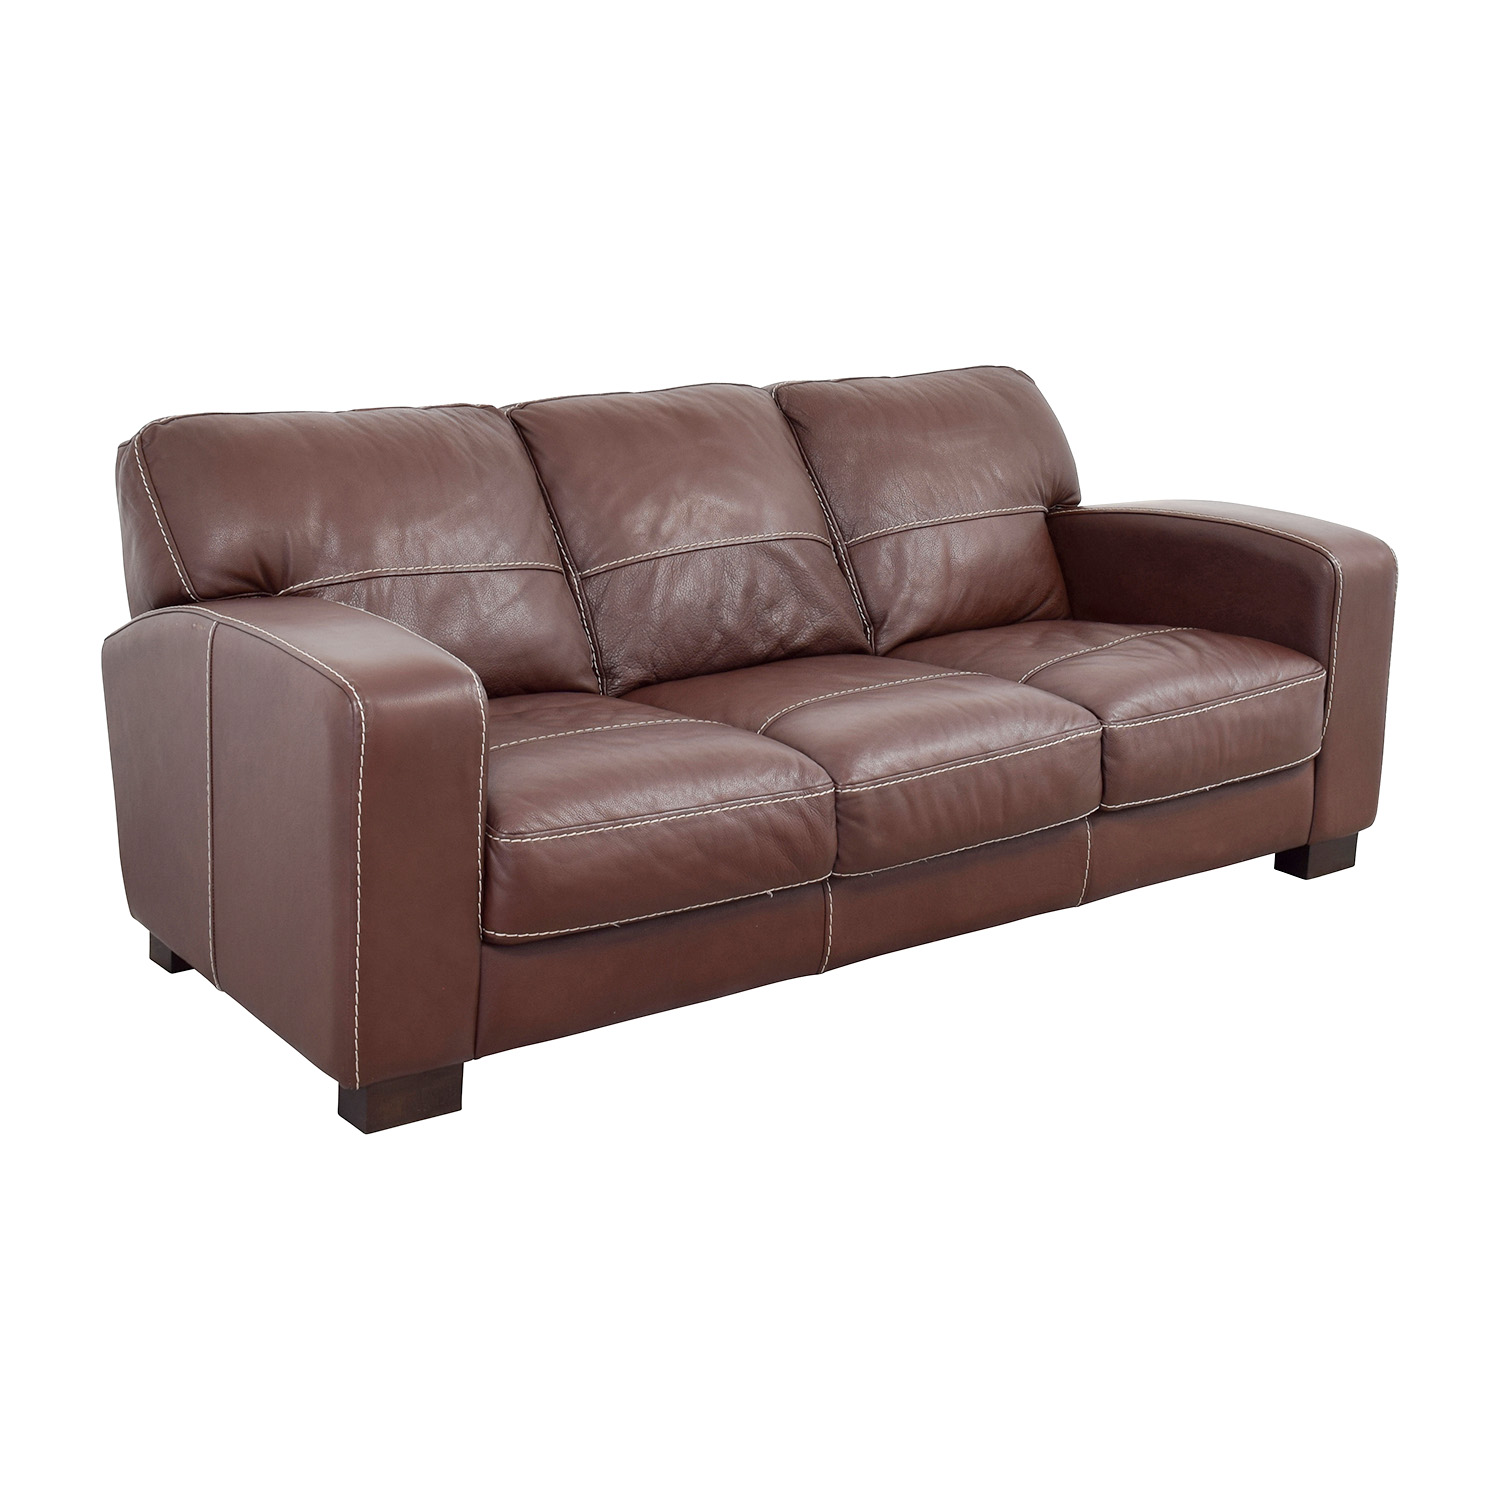 Leather Sofa Discount: Bob's Discount Furniture Bob's Furniture Antonio